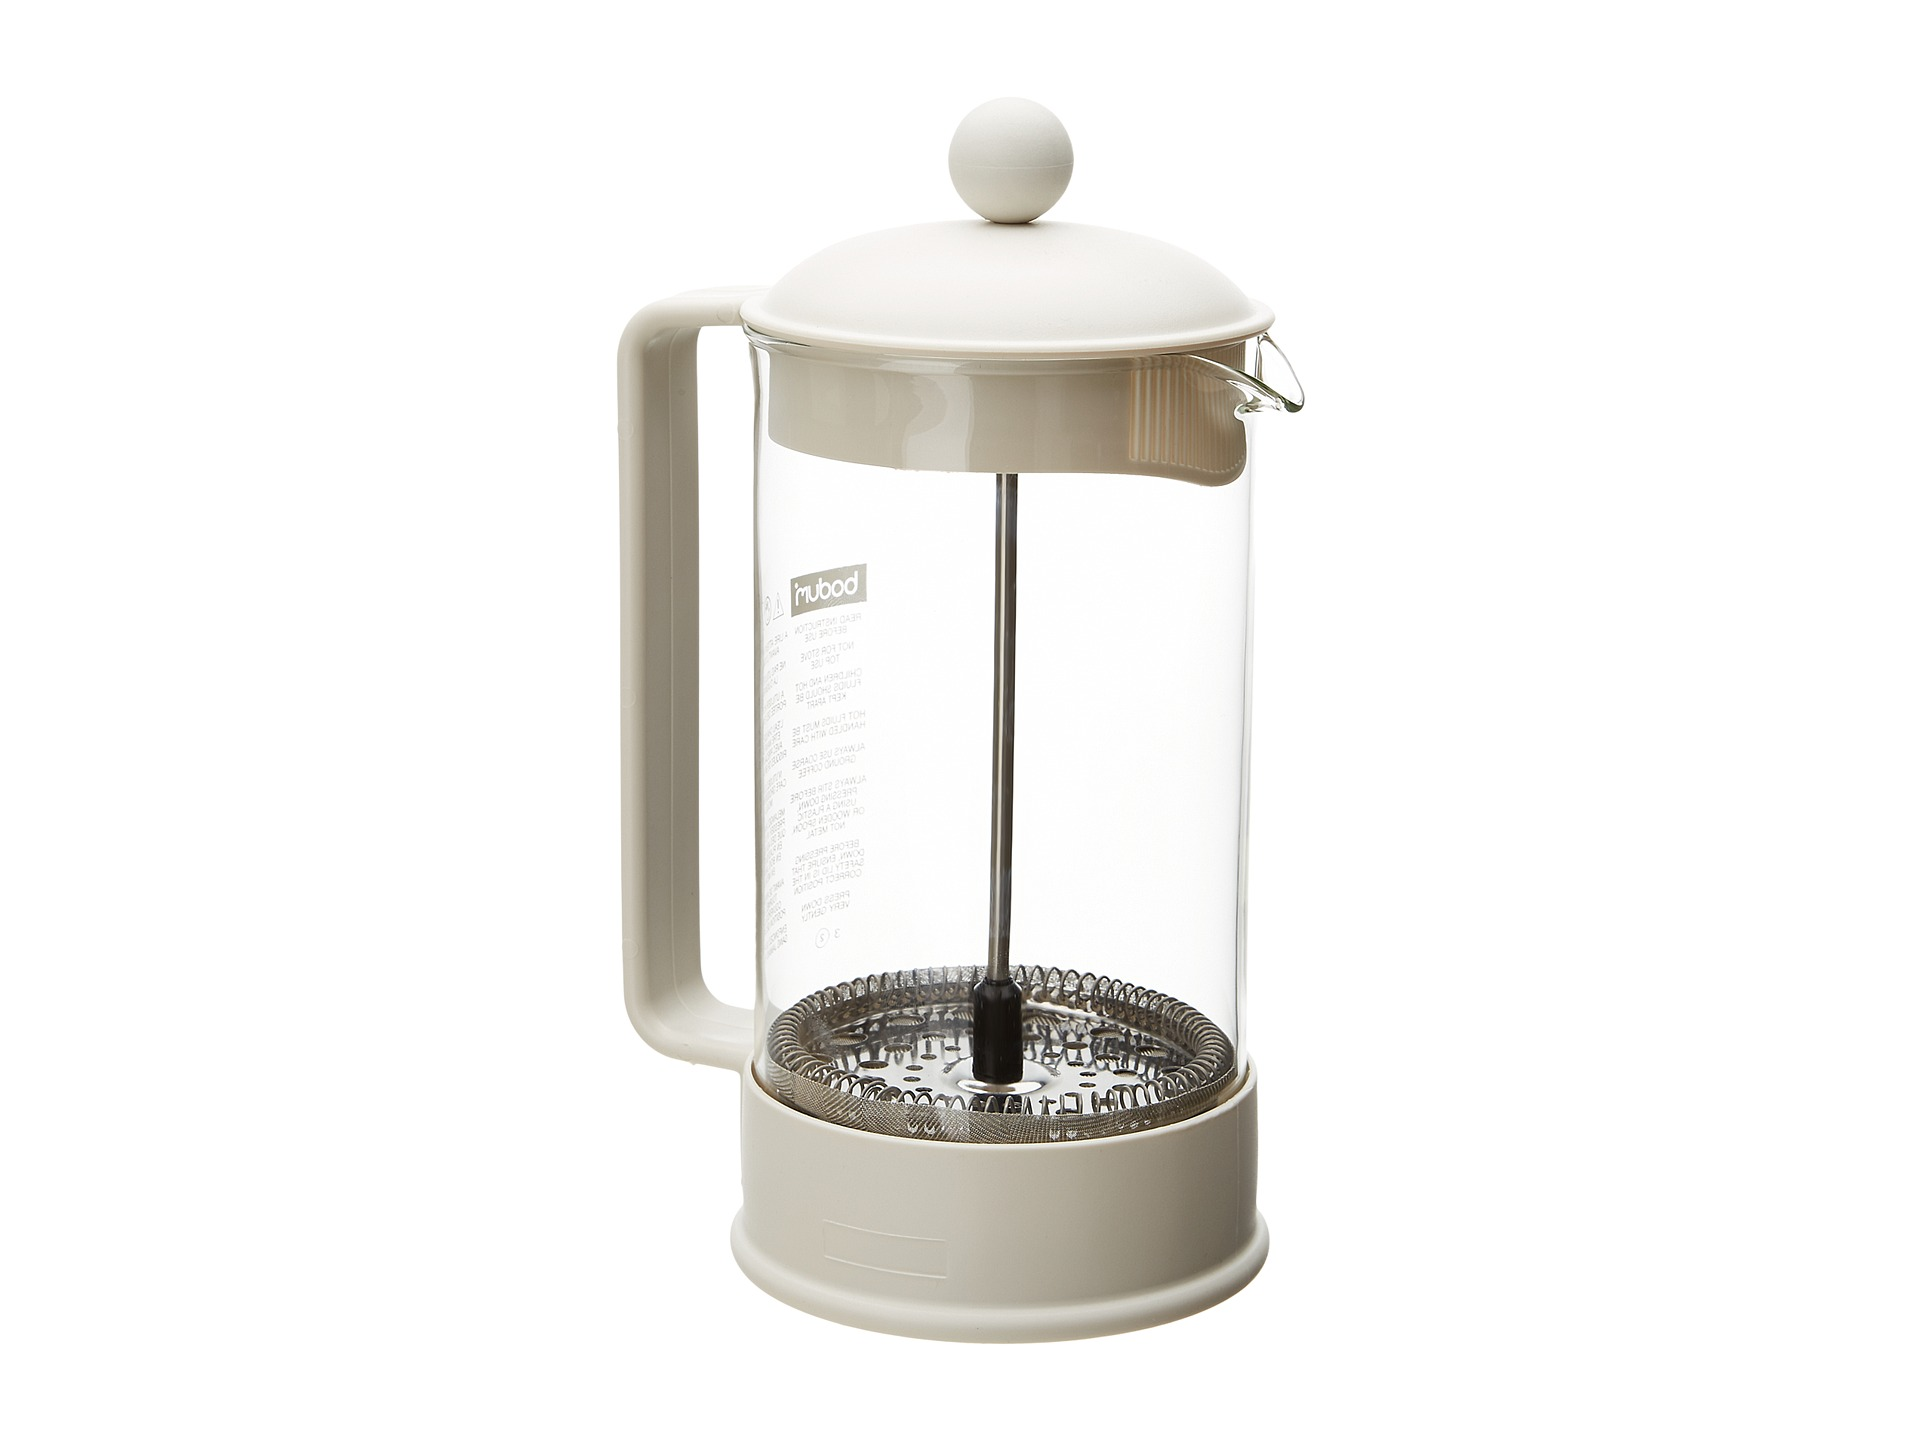 Bodum French Press Coffee Maker Instructions : French Press Coffee Instructions Share The Knownledge